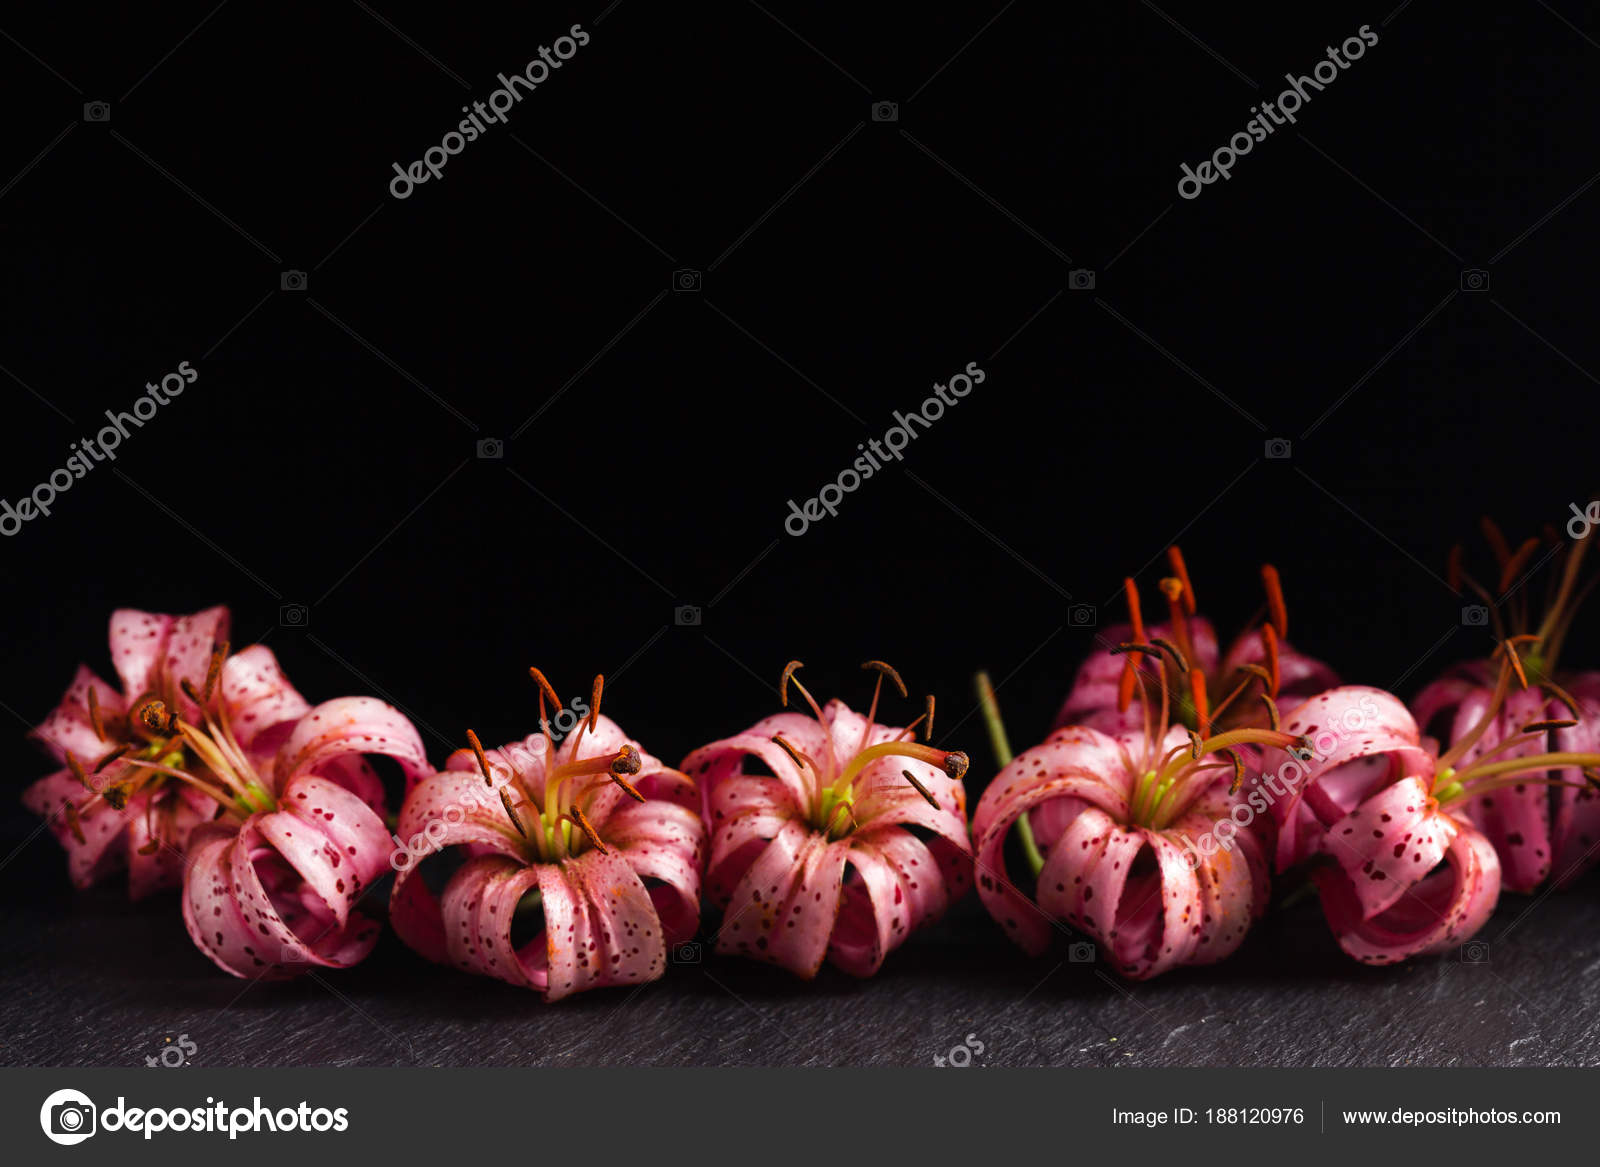 Lily flowers black background stock photo shebeko 188120976 lily flowers black background stock photo izmirmasajfo